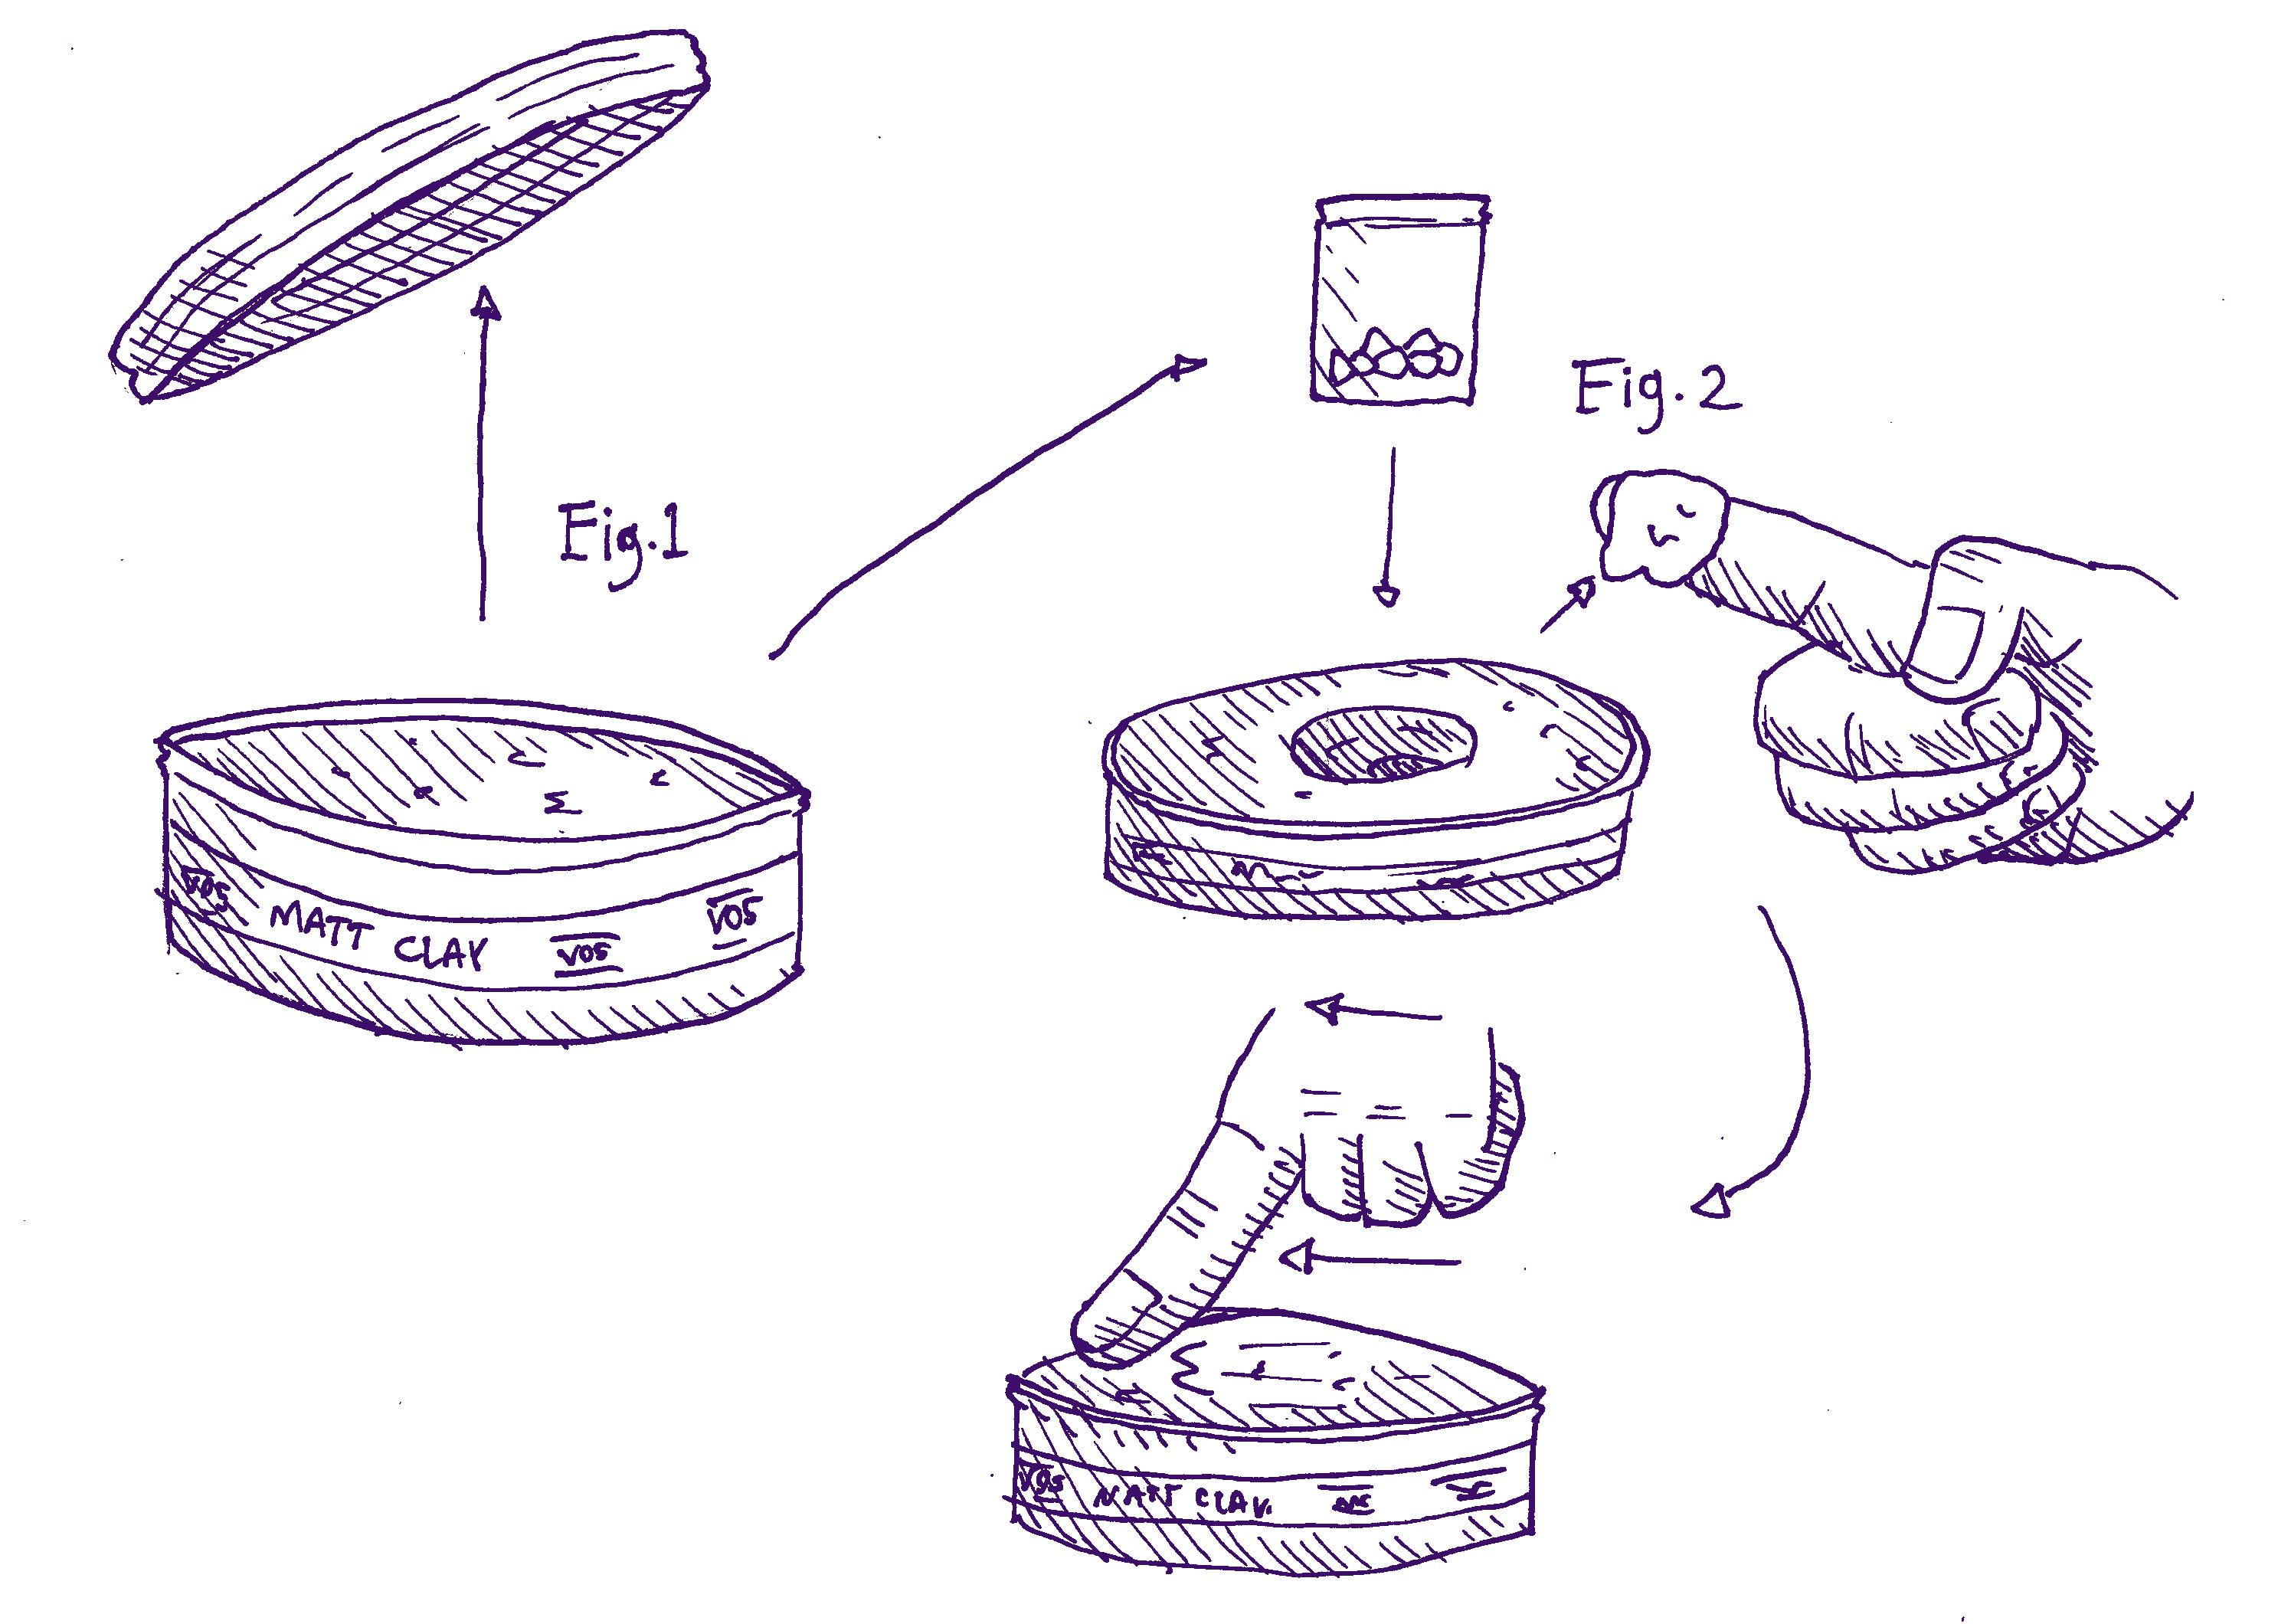 The steps necessary to smuggle drugs into a festival inside a pot of VO5 are shown in this diagram